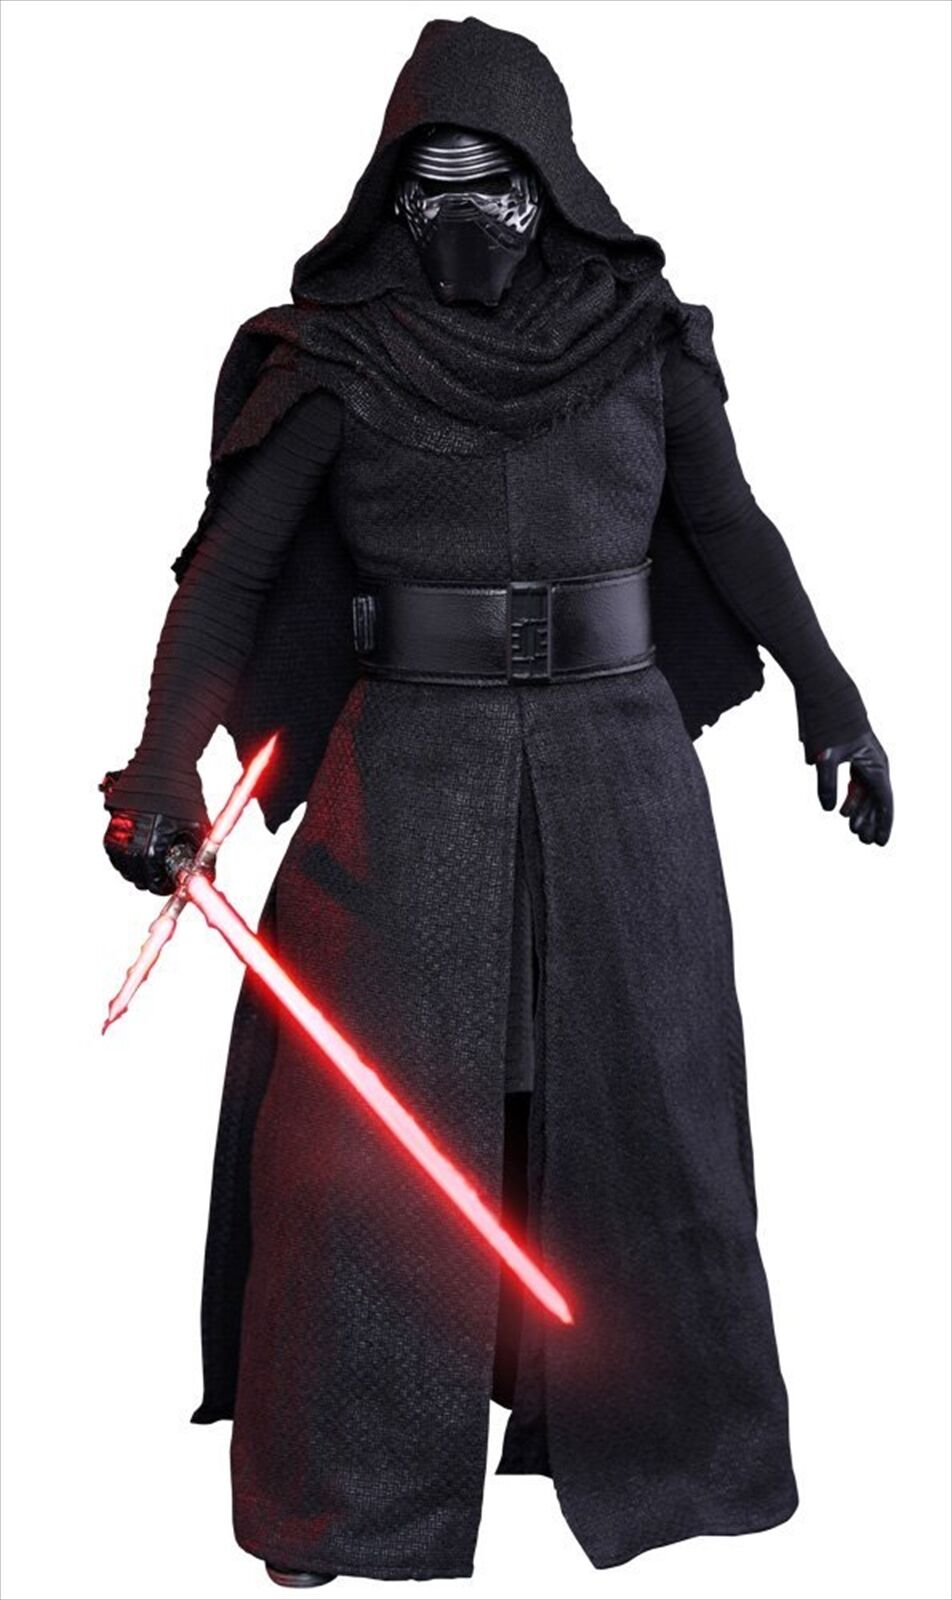 Hot Toys Star Wars The Force Awakens Kylo Ren 1/6 Scale Action Figure